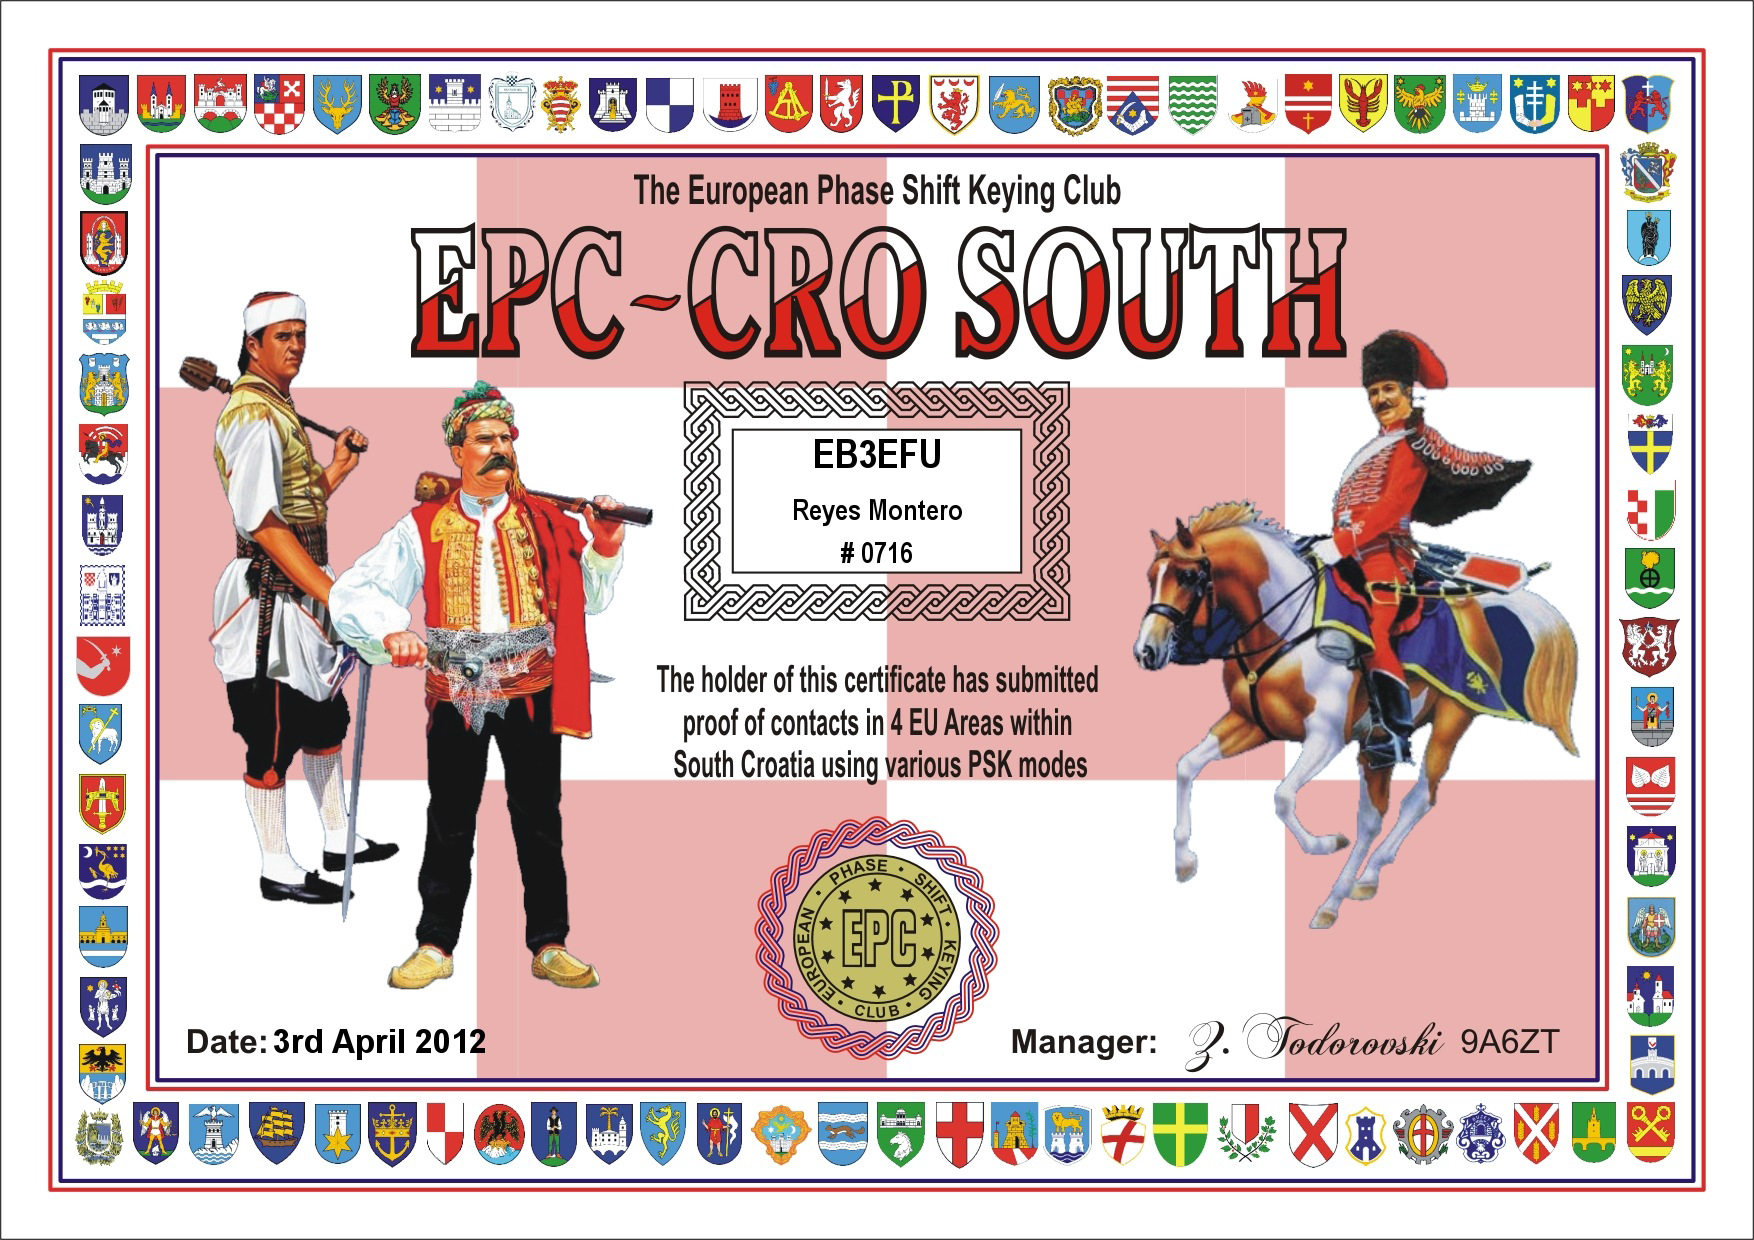 EB3EFU-EPCCRO-SOUTH